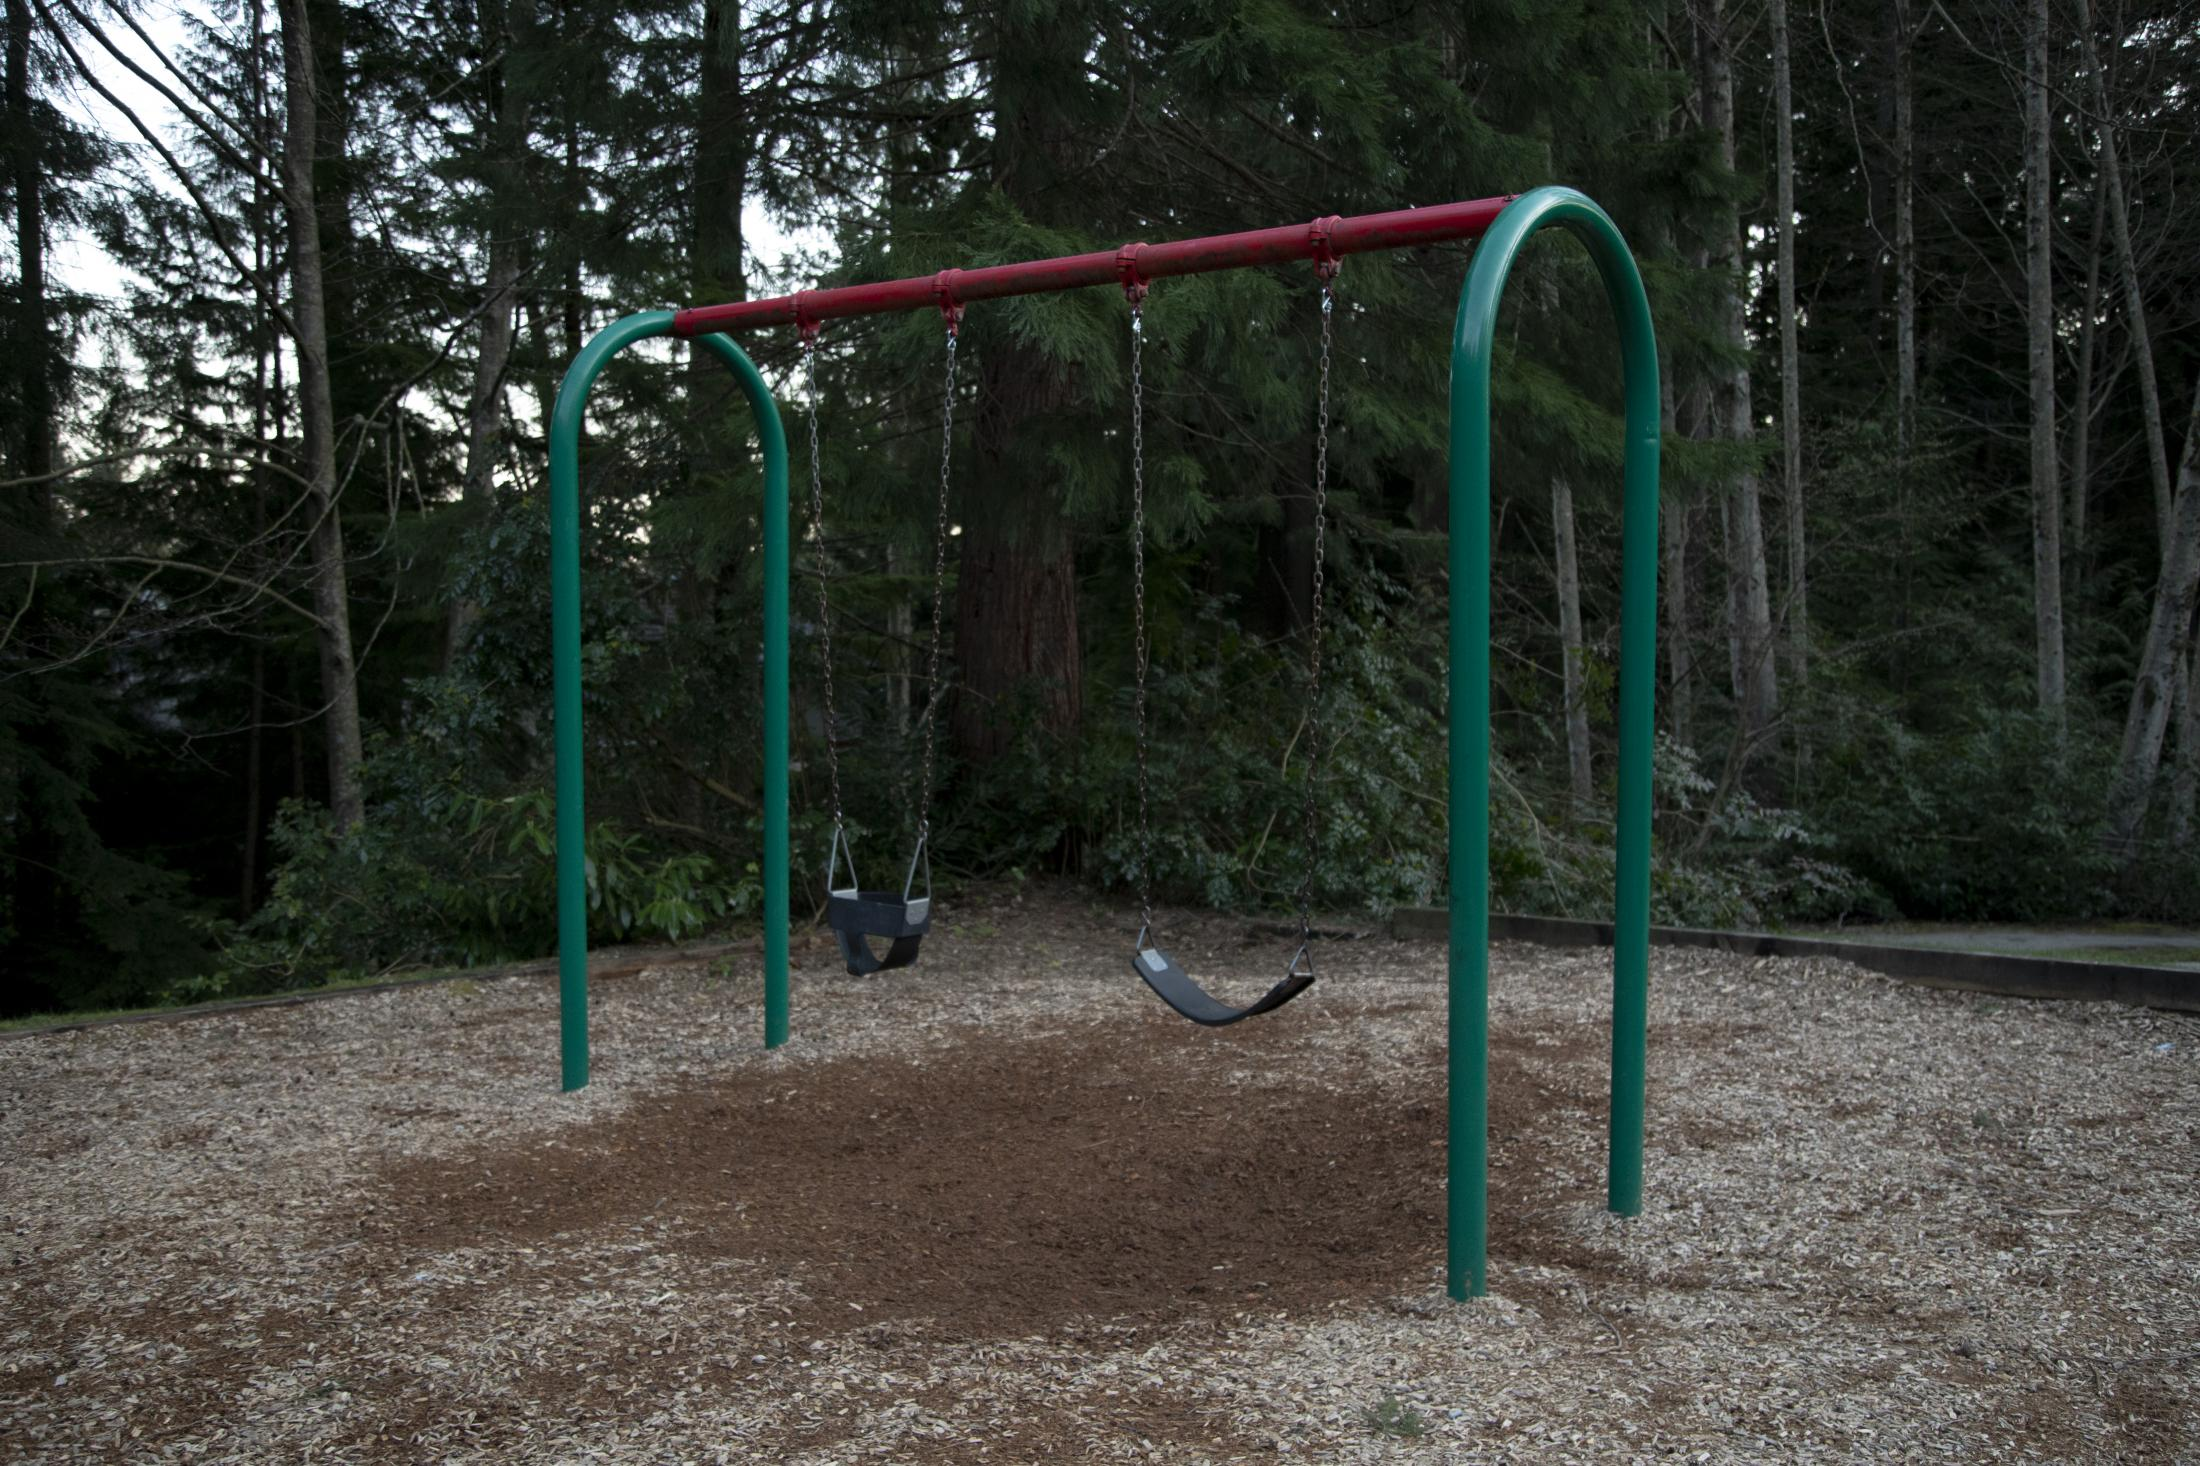 A set of swings is seen at Grousewoods Park in North Vancouver, B.C., on Friday, March 20, 2020. Effective Friday, March 20, 2020, the City and District of North Vancouver have closed all playgrounds and playing fields in an attempt to curb the spread of COVID-19. North Vancouver has been a hotspot of COVID-19, with ten deaths connected to the Lynn Valley Care Centre as of Monday, March 23, 2020.